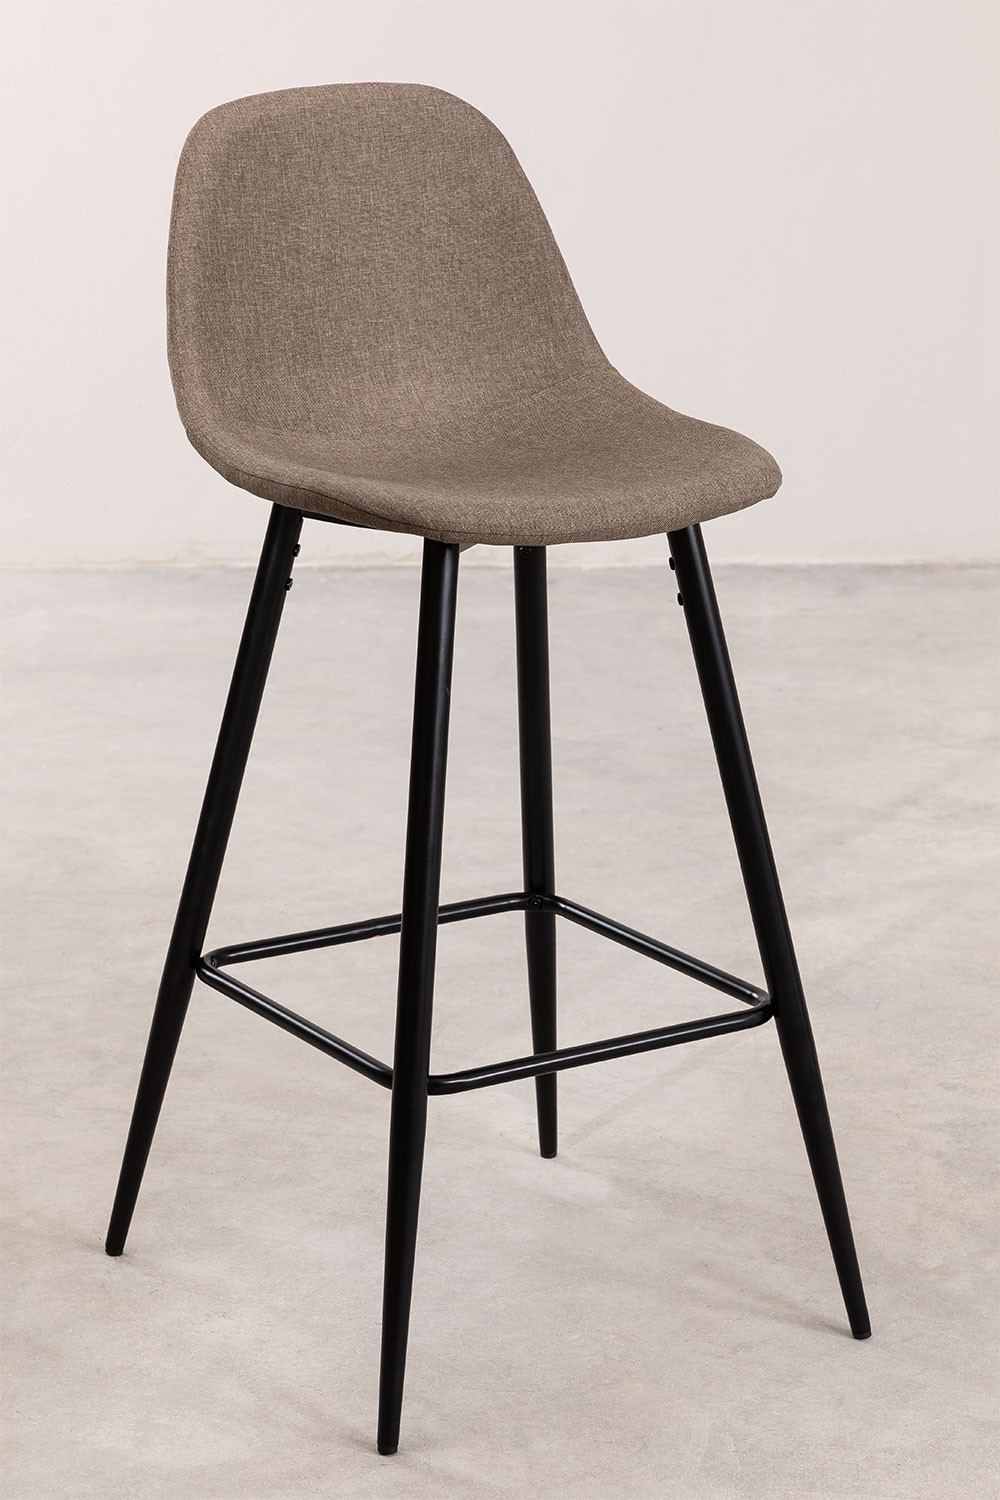 Pack 2 High Stools in Linen Glamm, gallery image 1